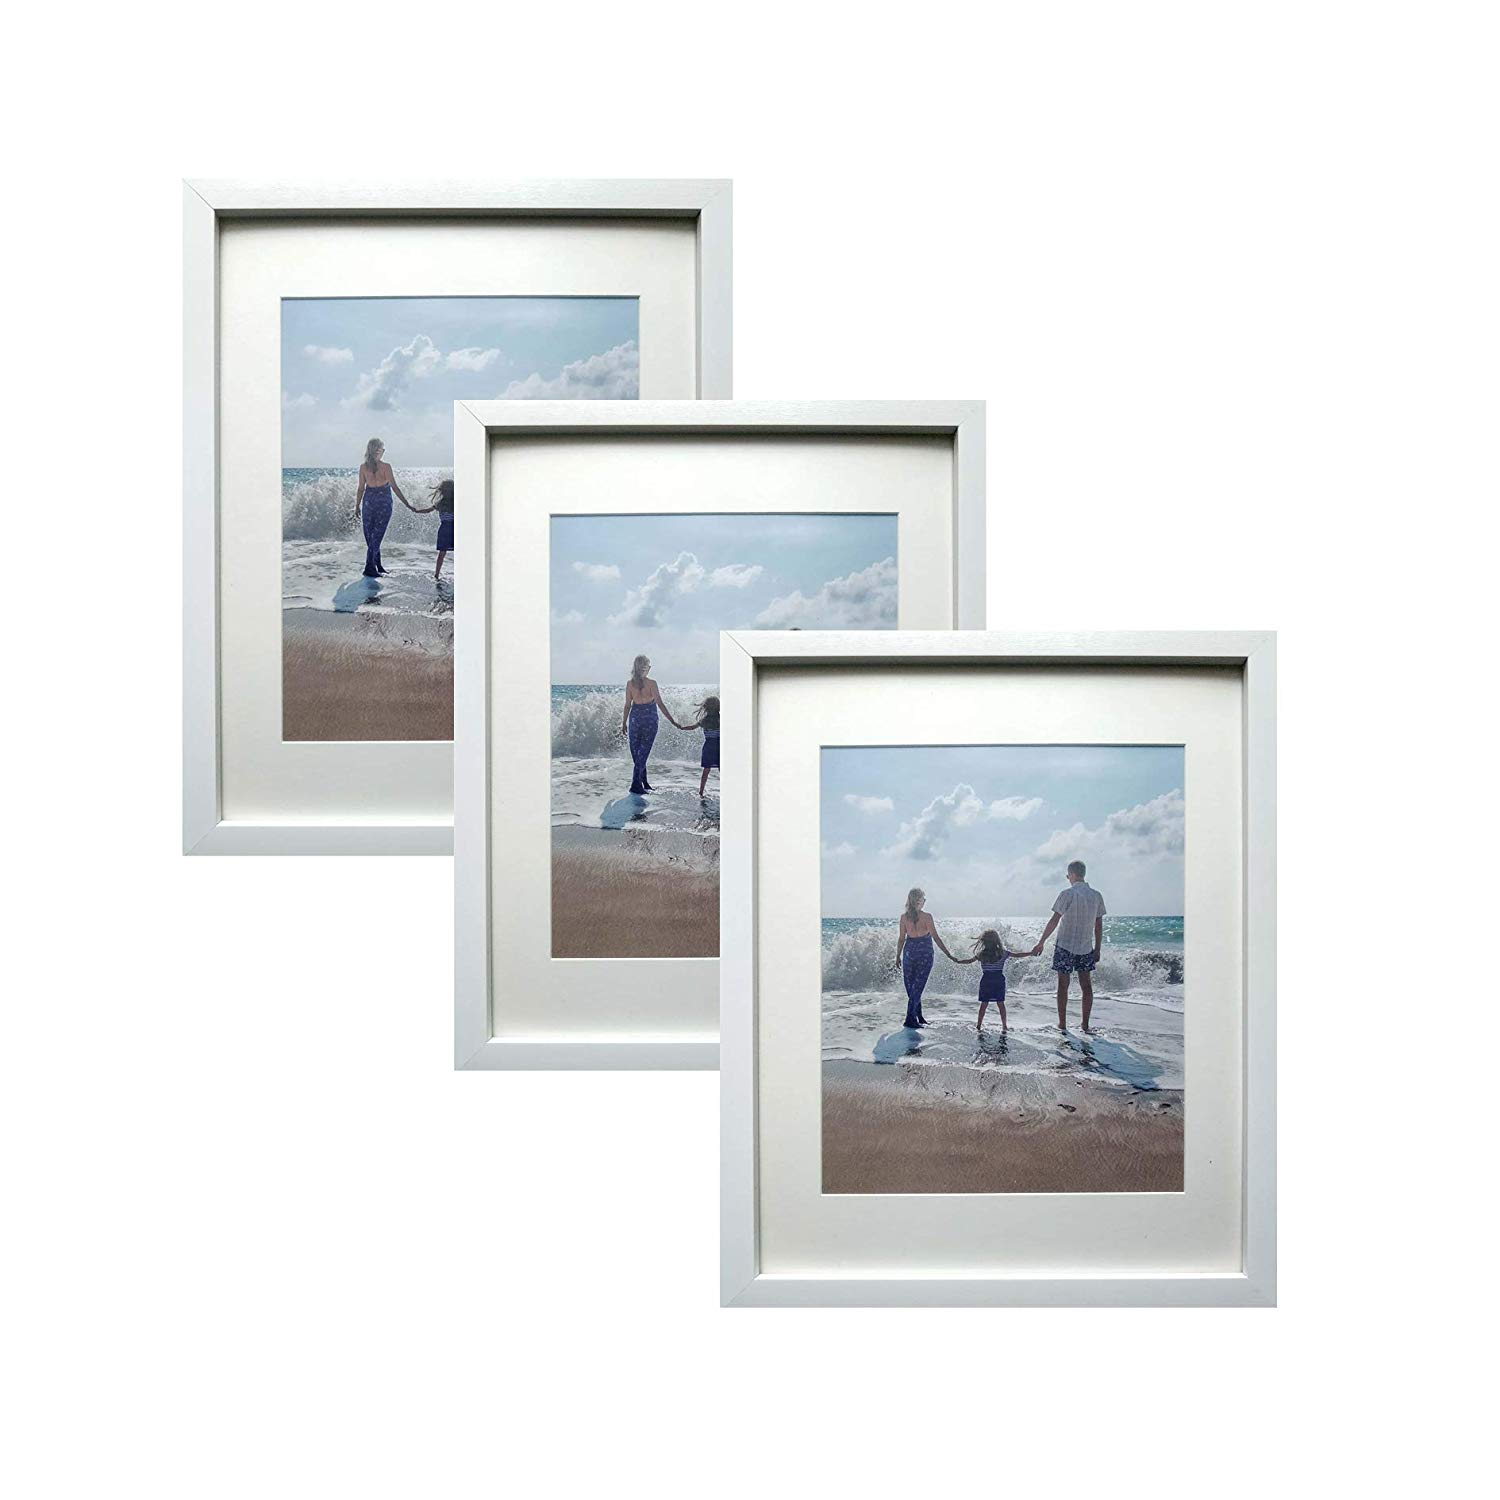 Amoy Art 3 Pack, 11x14 White Picture Photo Frames - Made to Display Pictures Photo 8x10 with Mat or 11x14 Without Mat Wall & Tabletop Frames